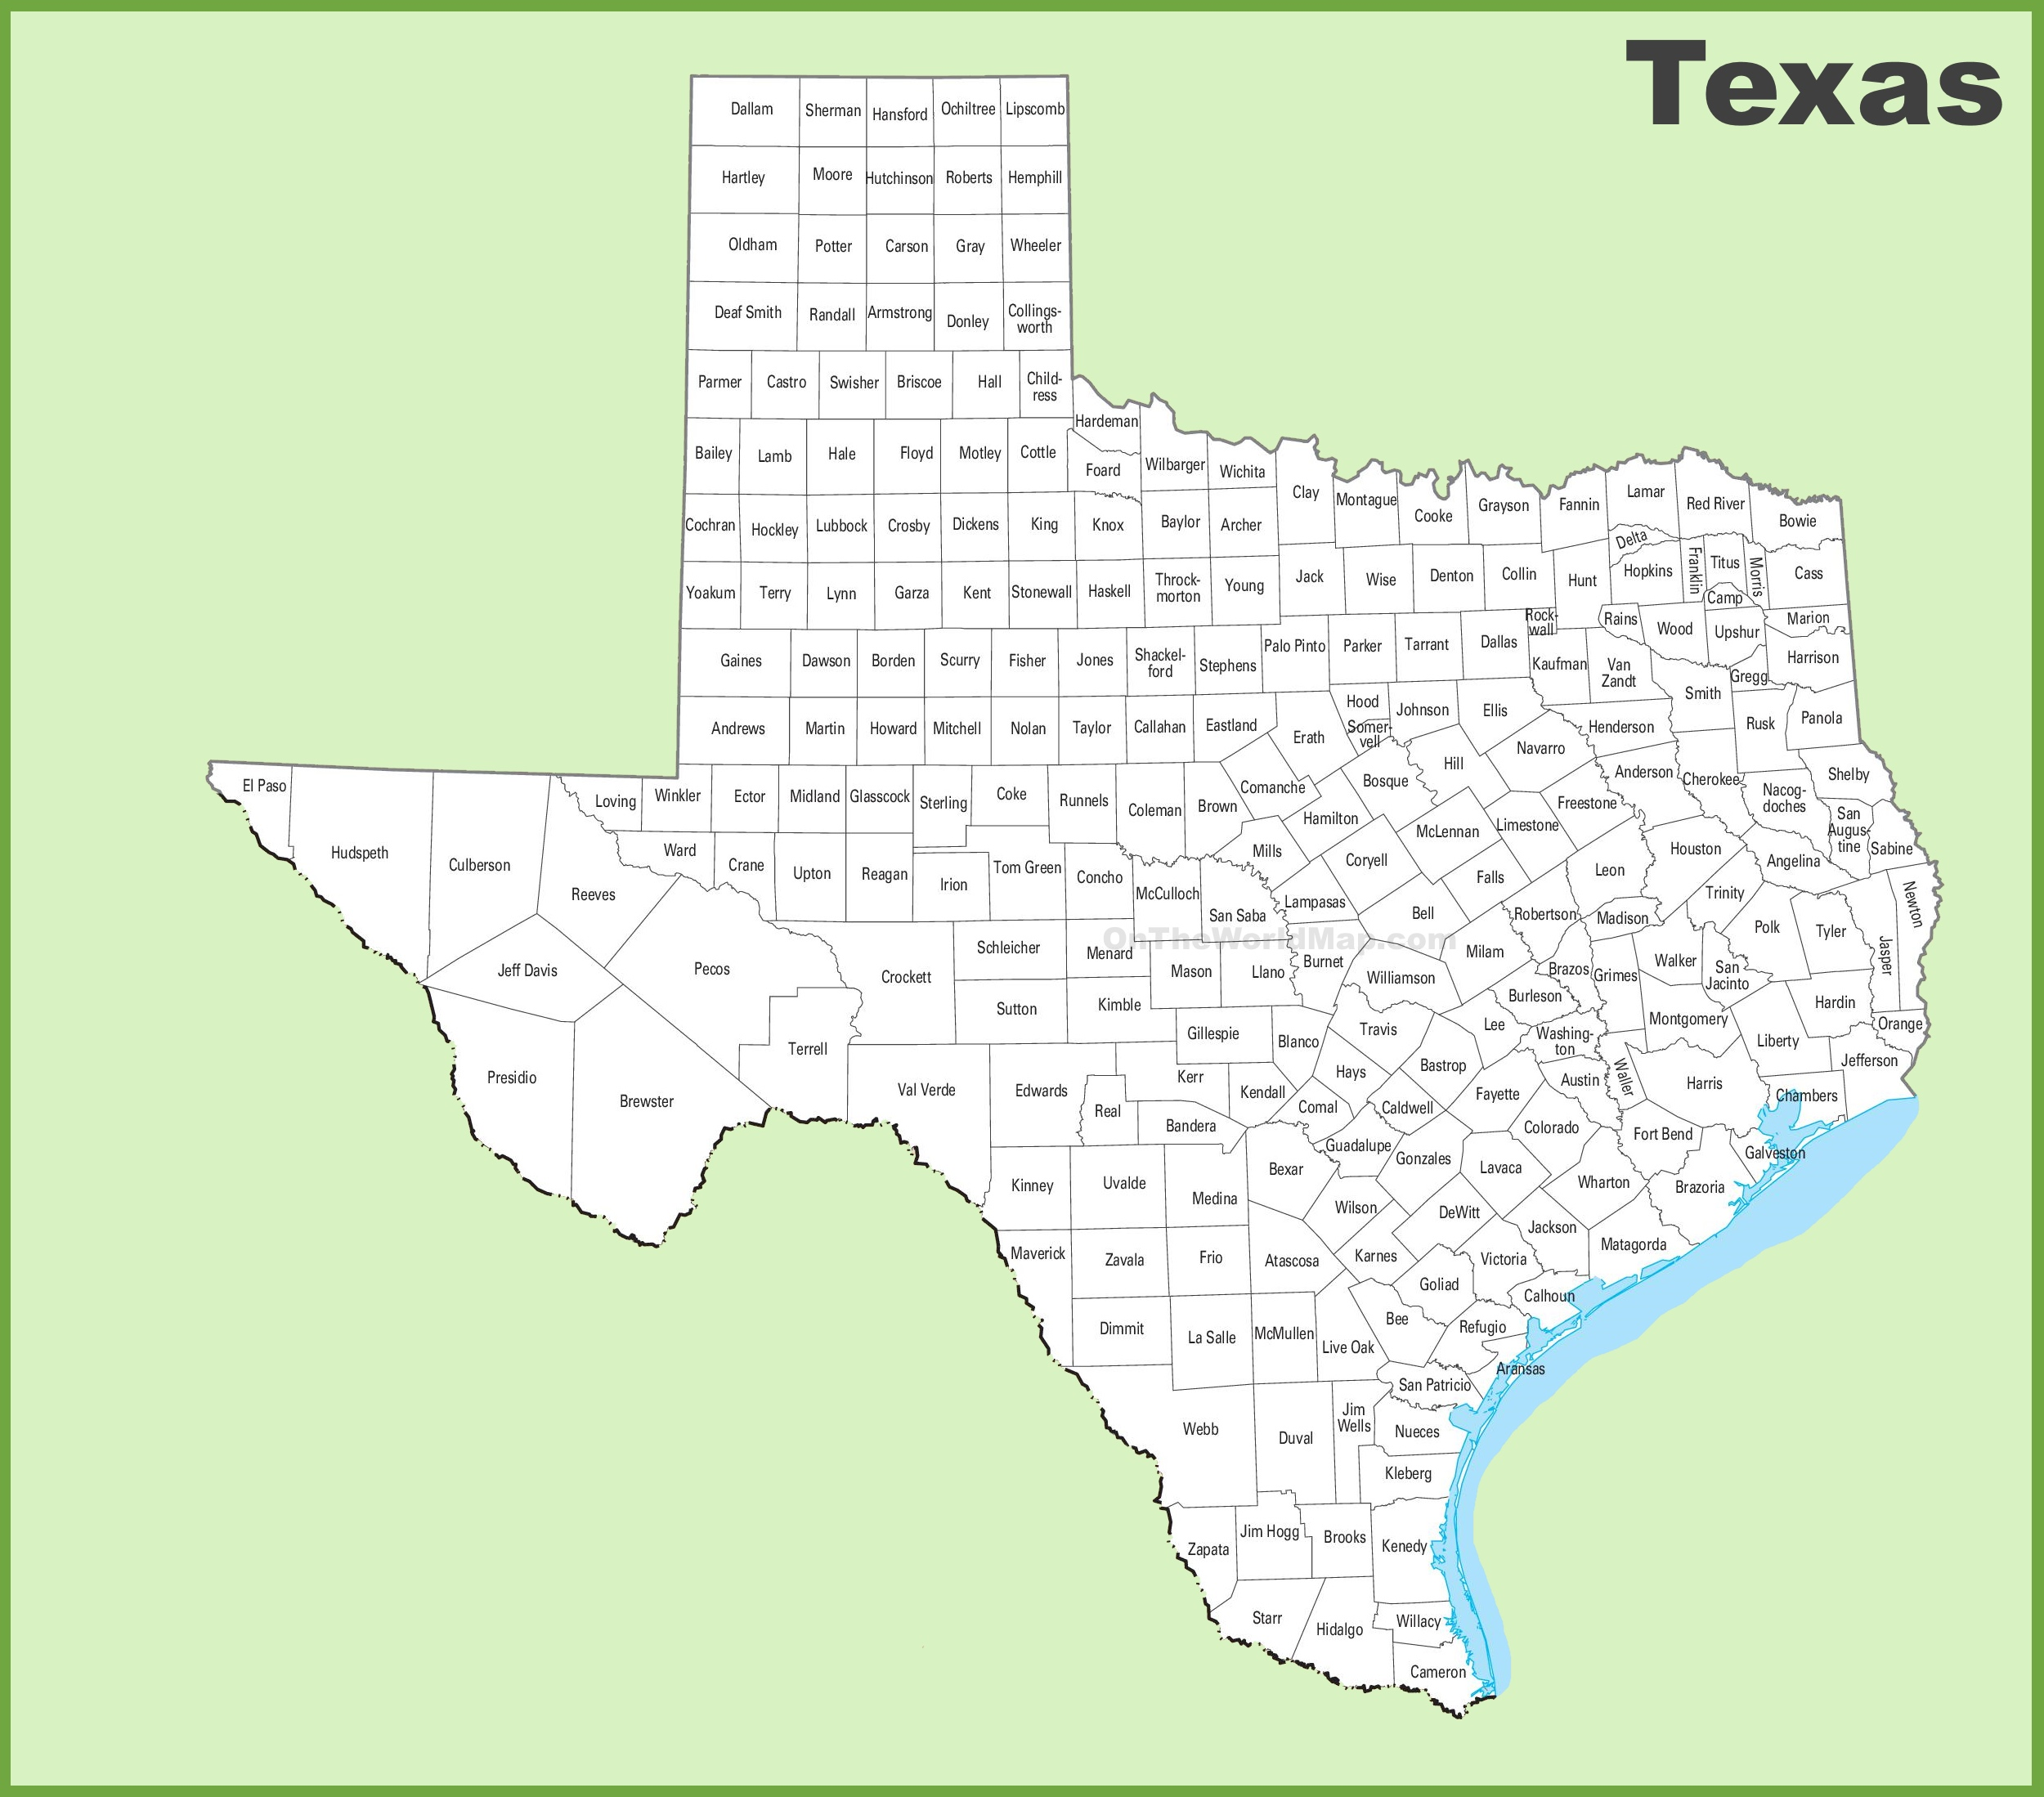 Texas County Map - Texasmap